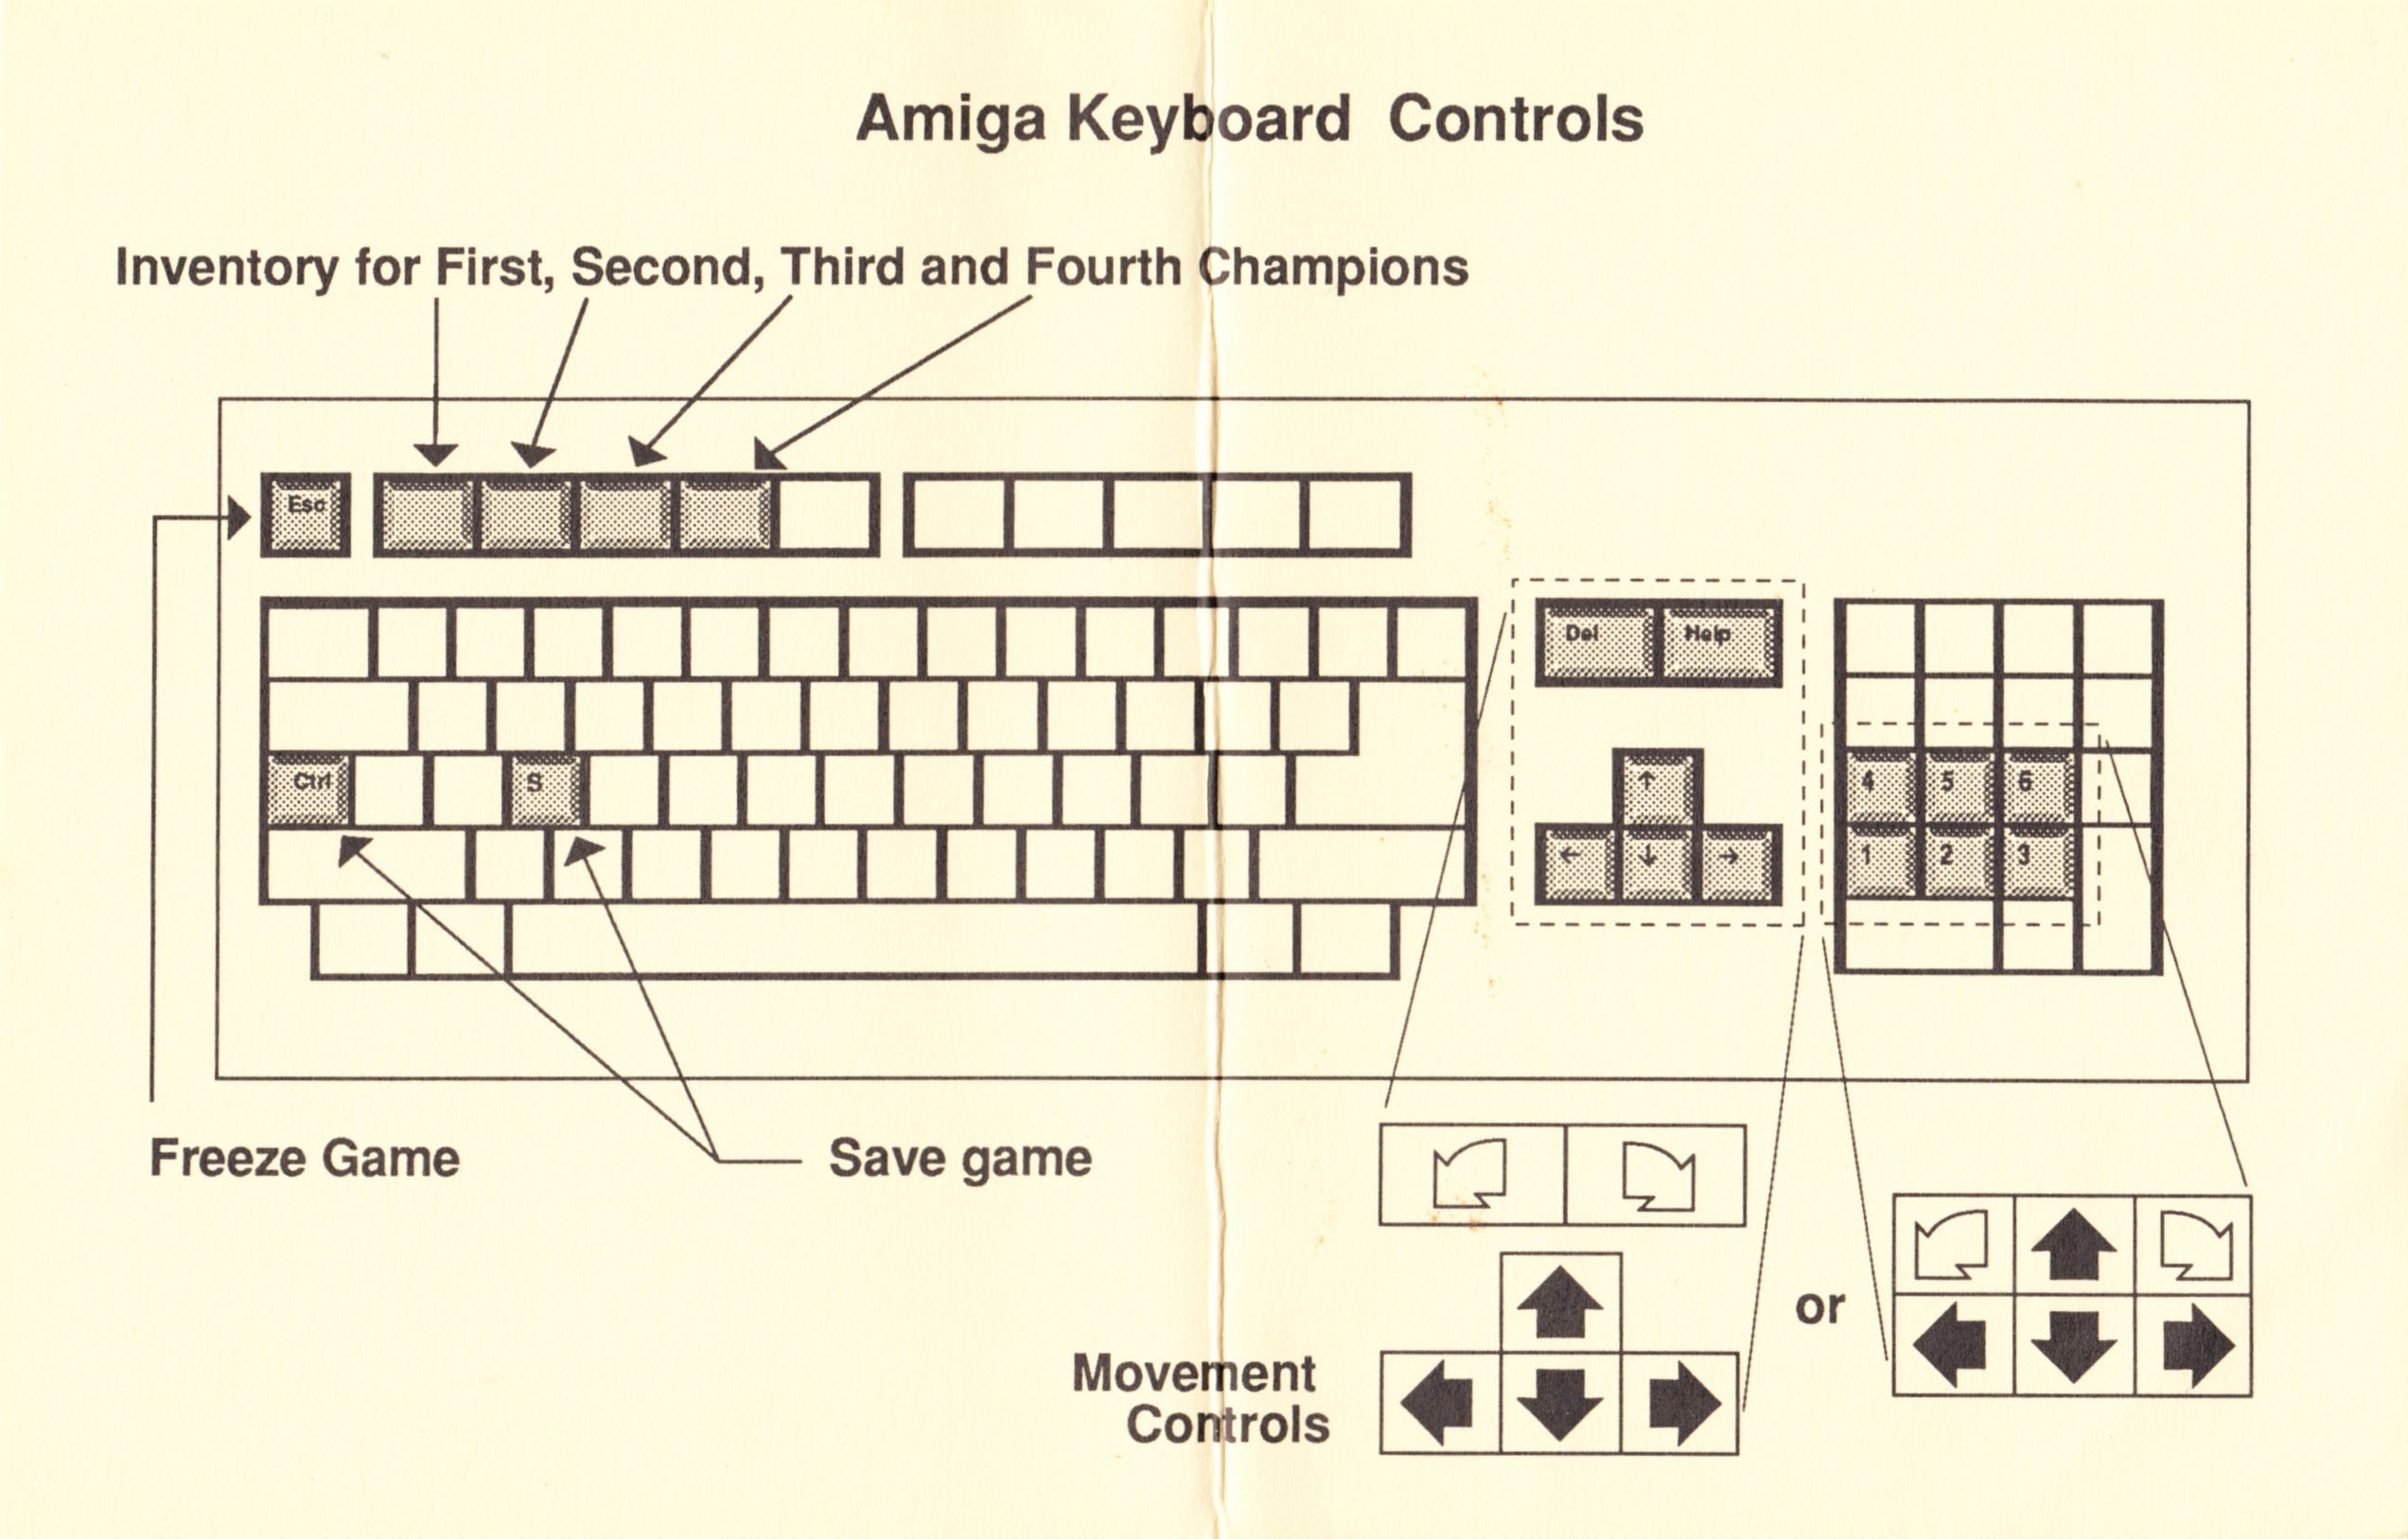 Memory Card - AmiRAM 1000 - EU - Amiga - Without Clock DM CSB - Keyboard Controls - Front - Scan